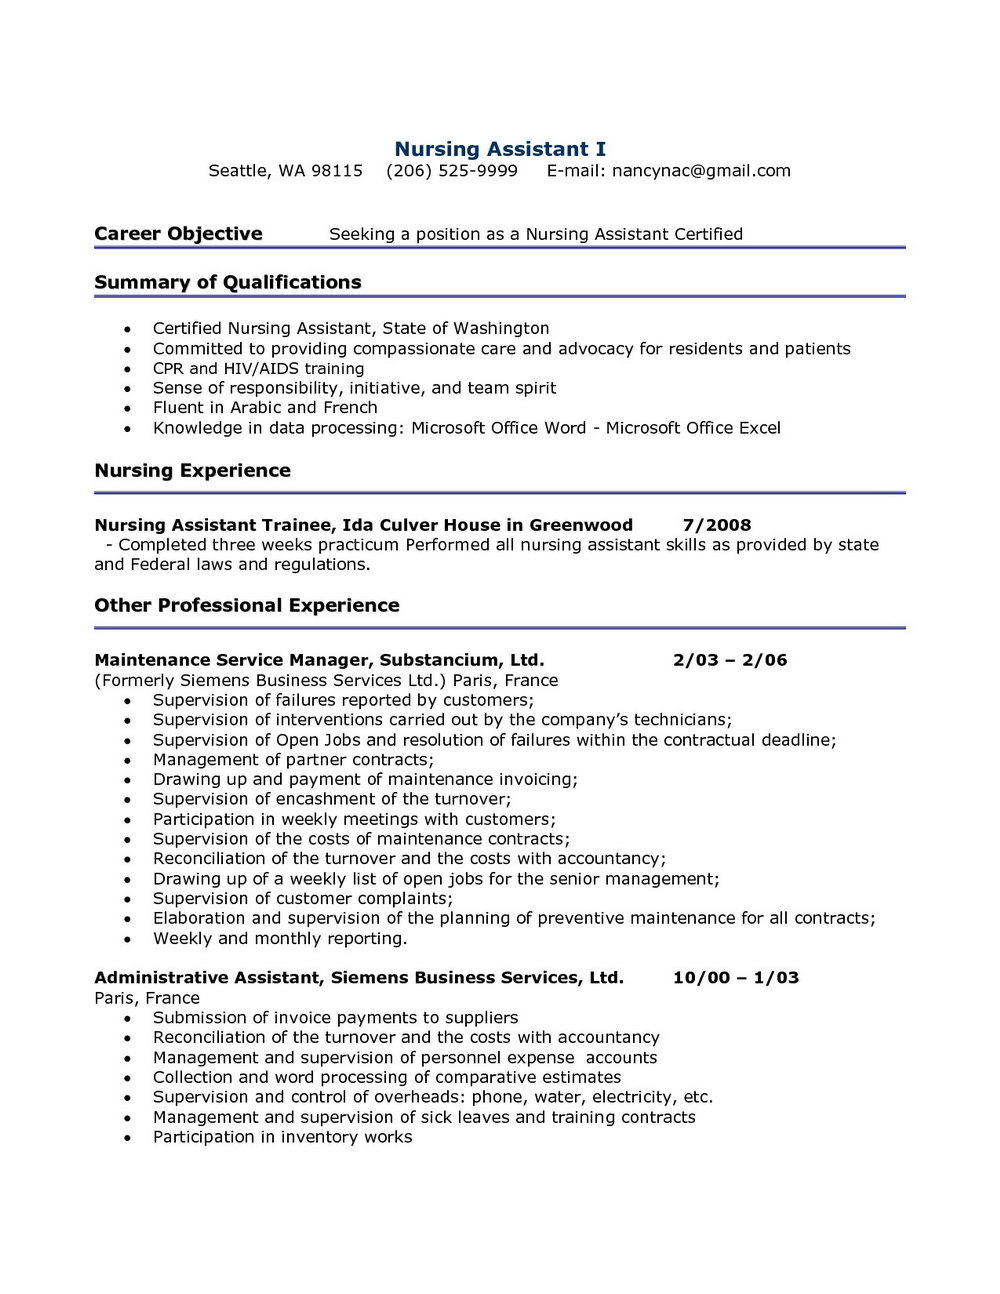 Resume Objective For Nursing Assistant With No Experience